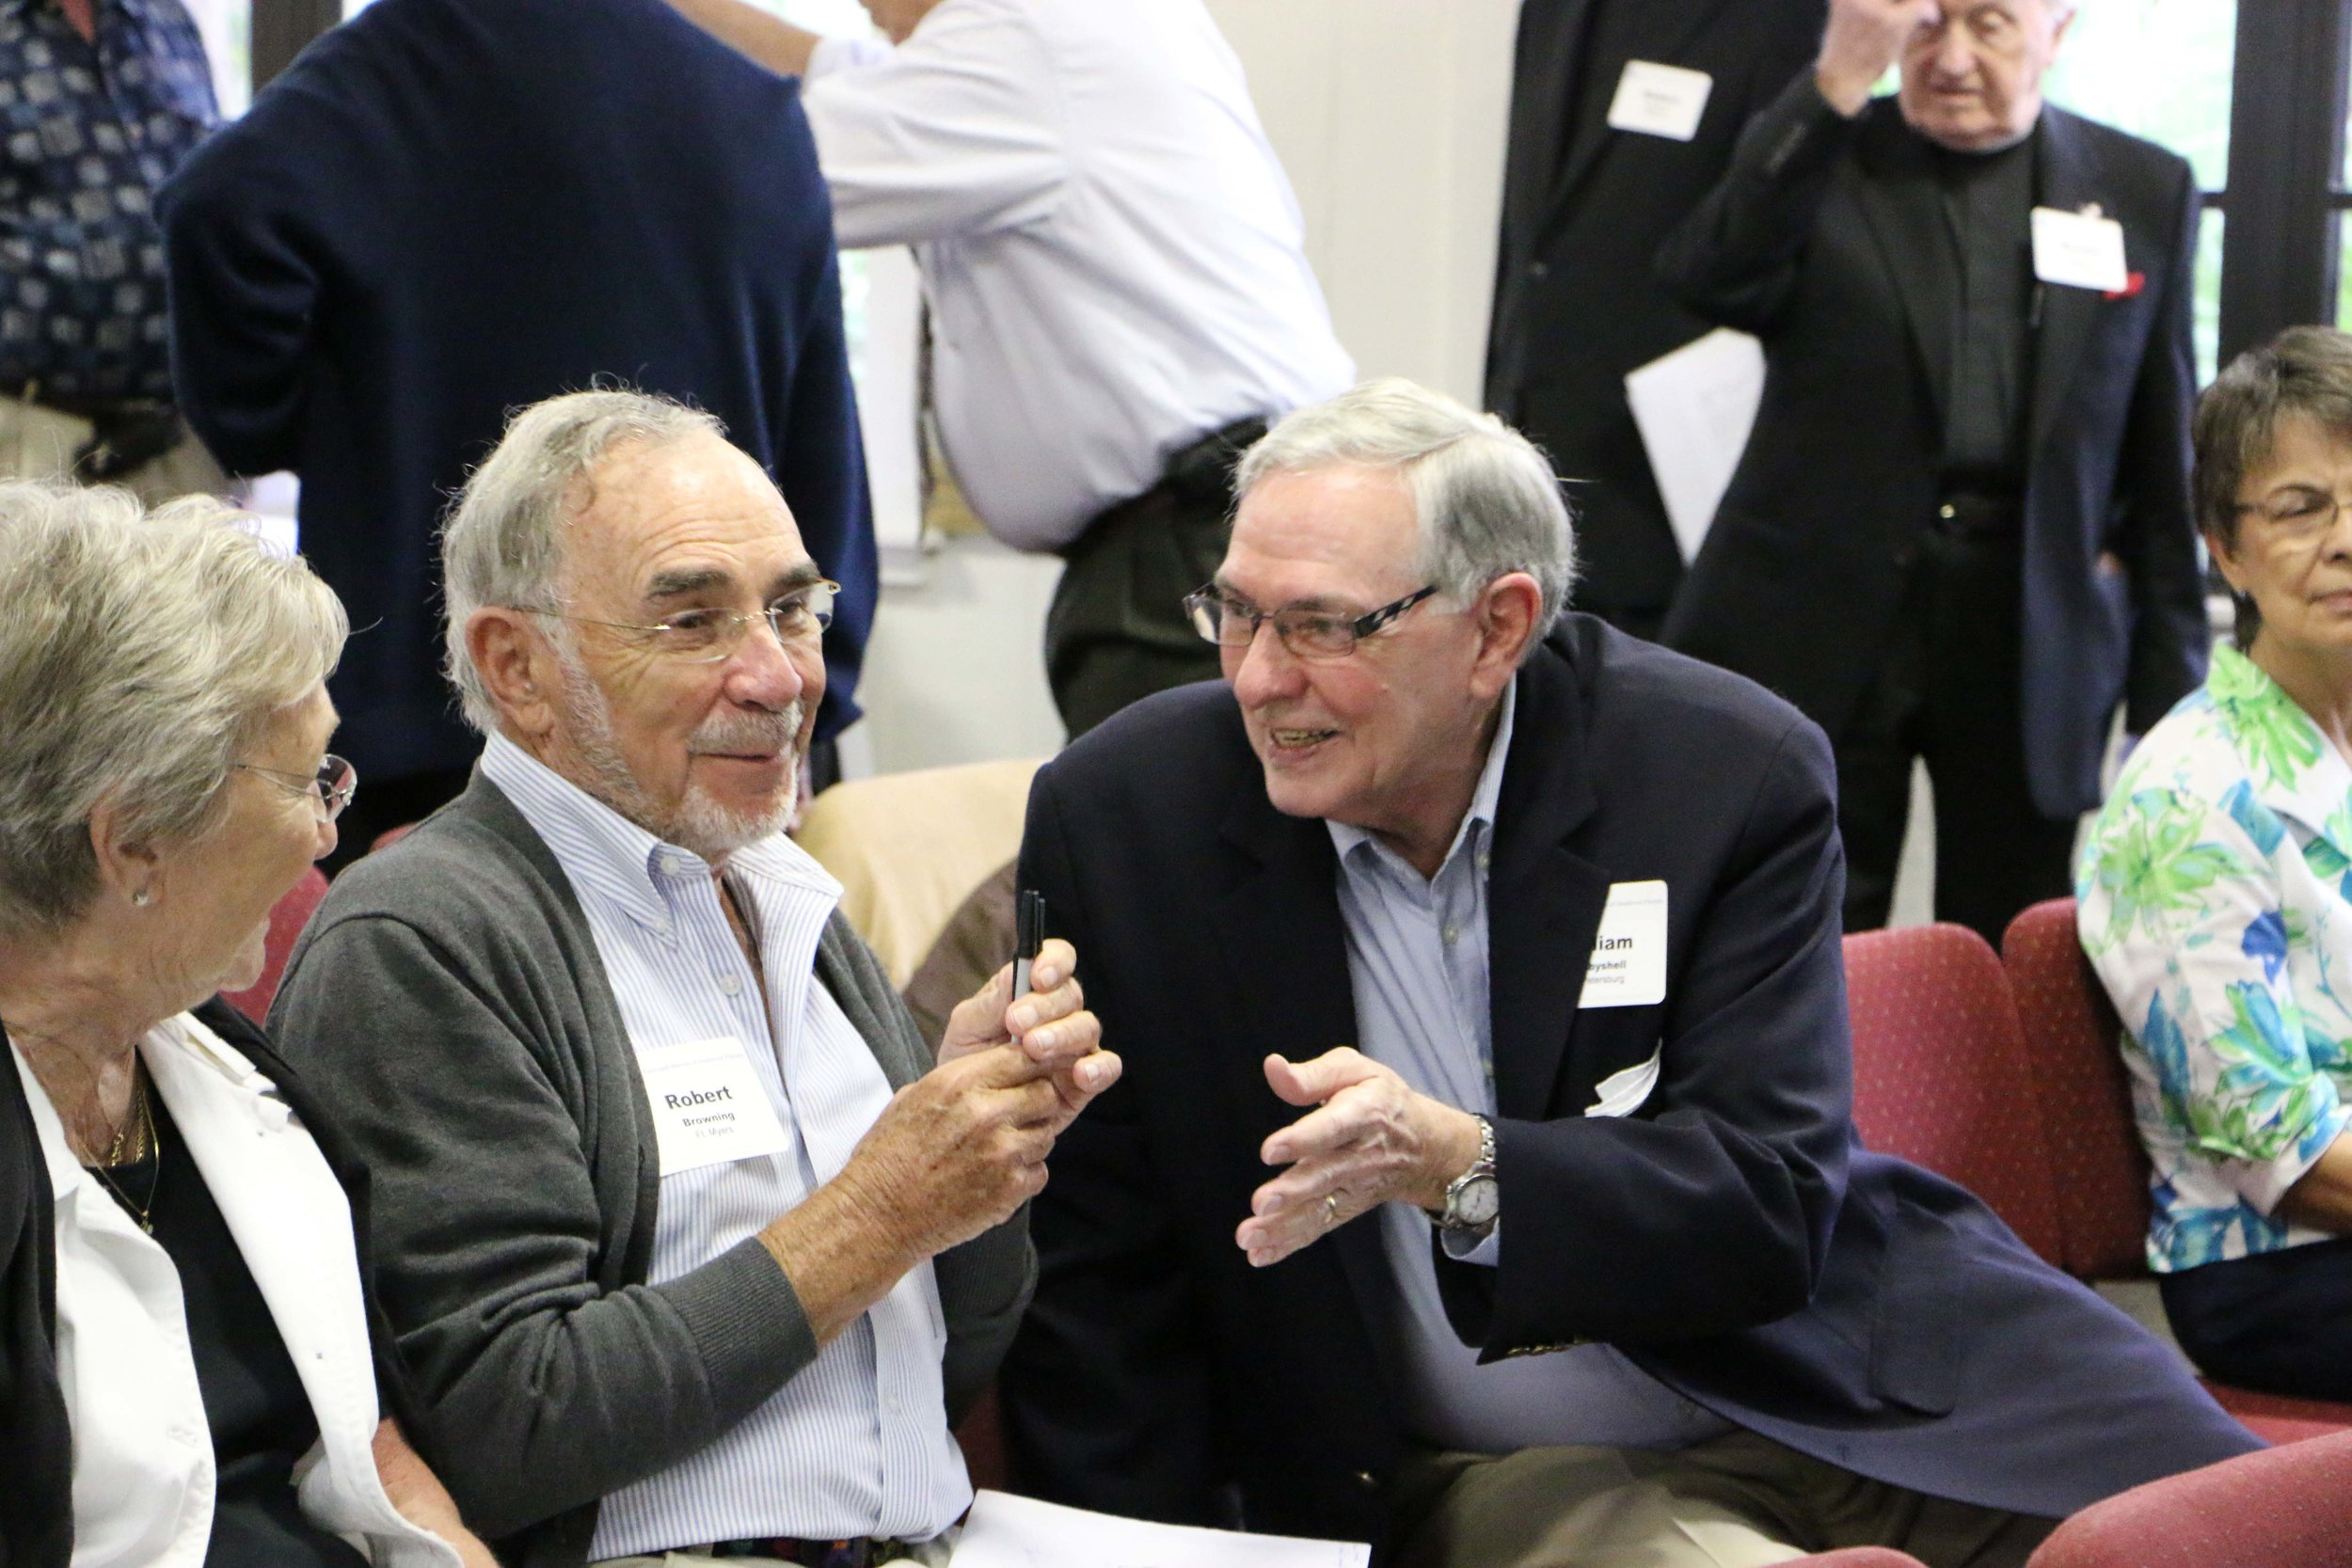 Pictured above, the Rev. Dr. Bosbyshell, at right, with the Rev. Bob Browning, at the 2014 Retired Clergy and Spouses event in the Diocese of Southwest Florida.